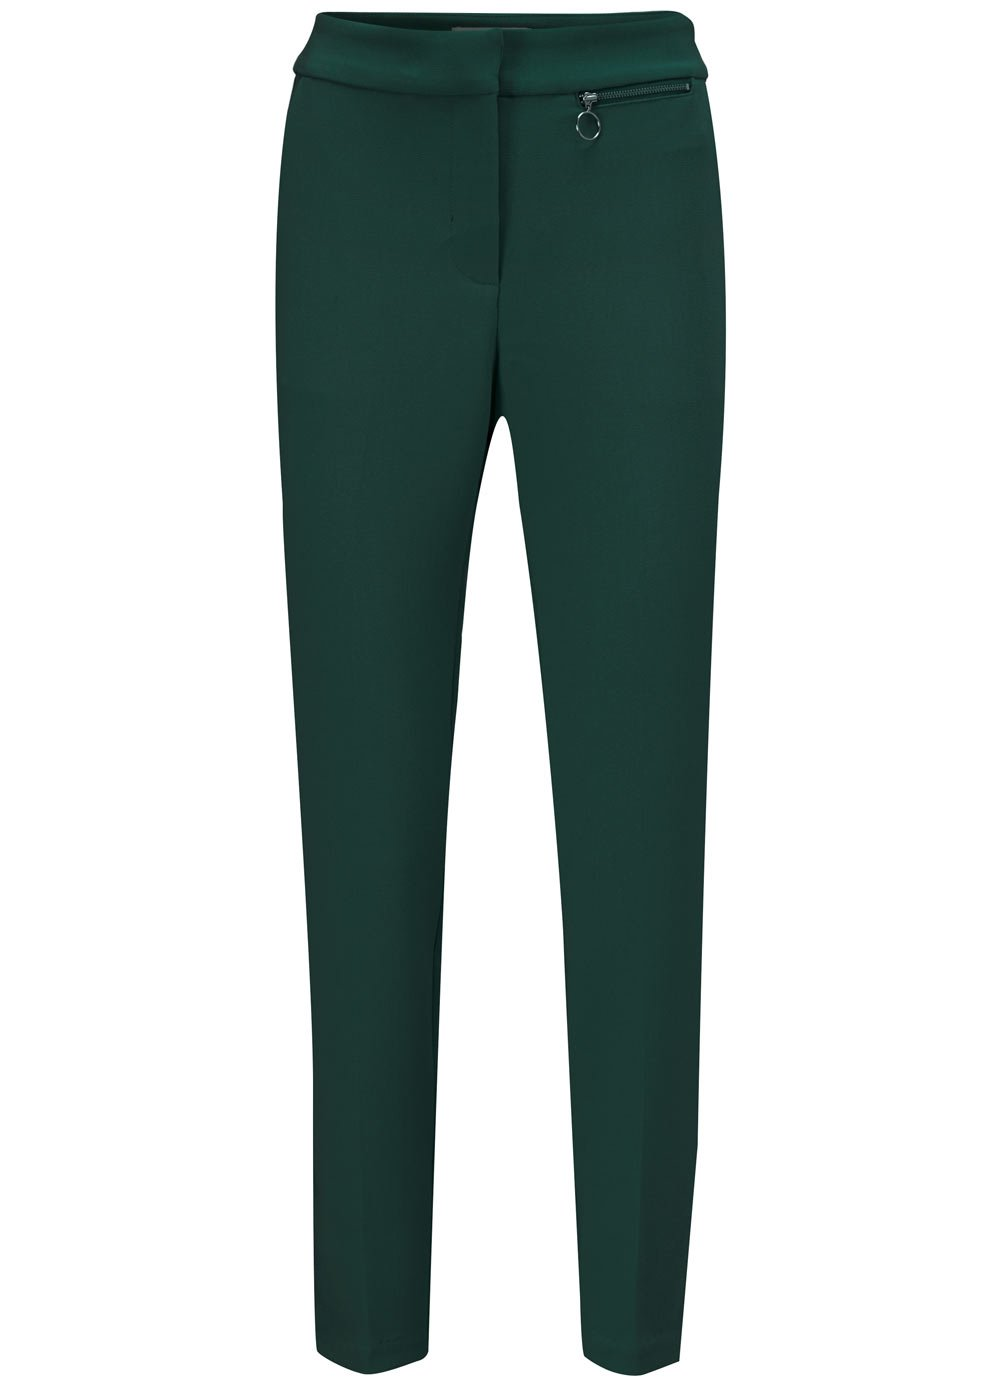 Kate Pants - Bottle Green